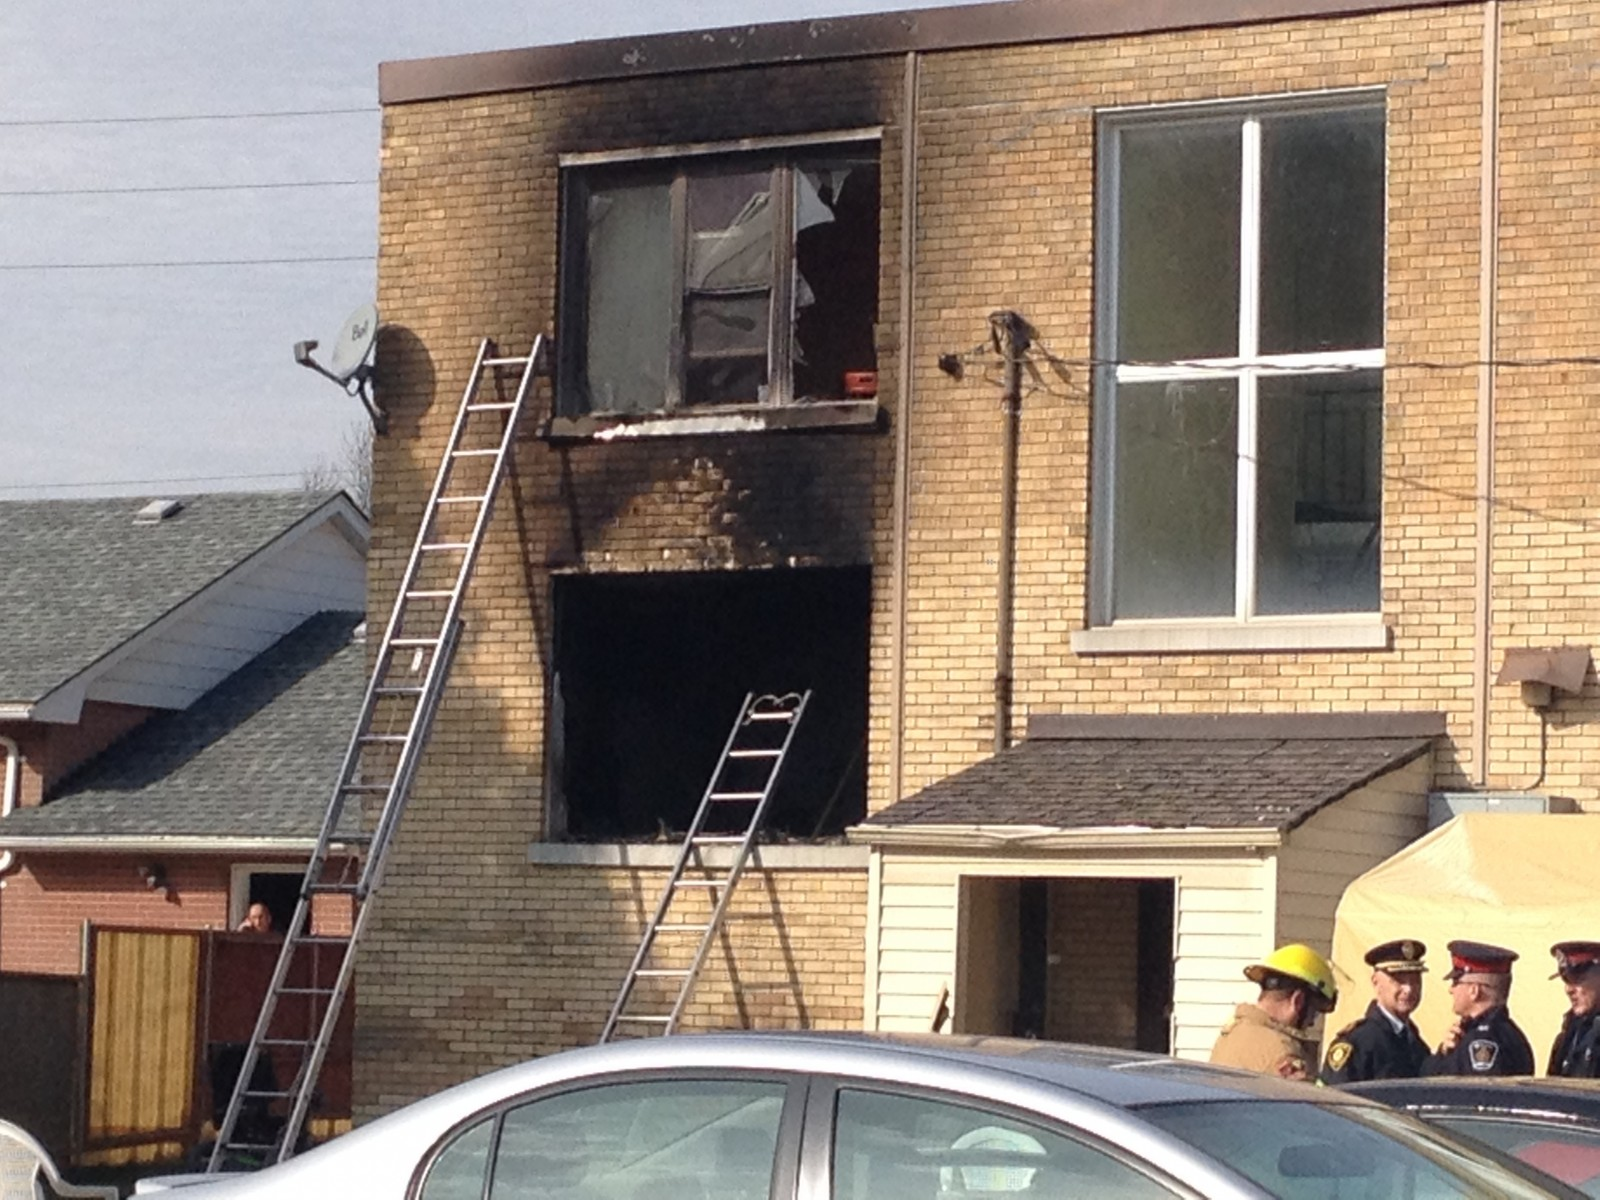 Update: Apartment building on Oxford street goes up in flames